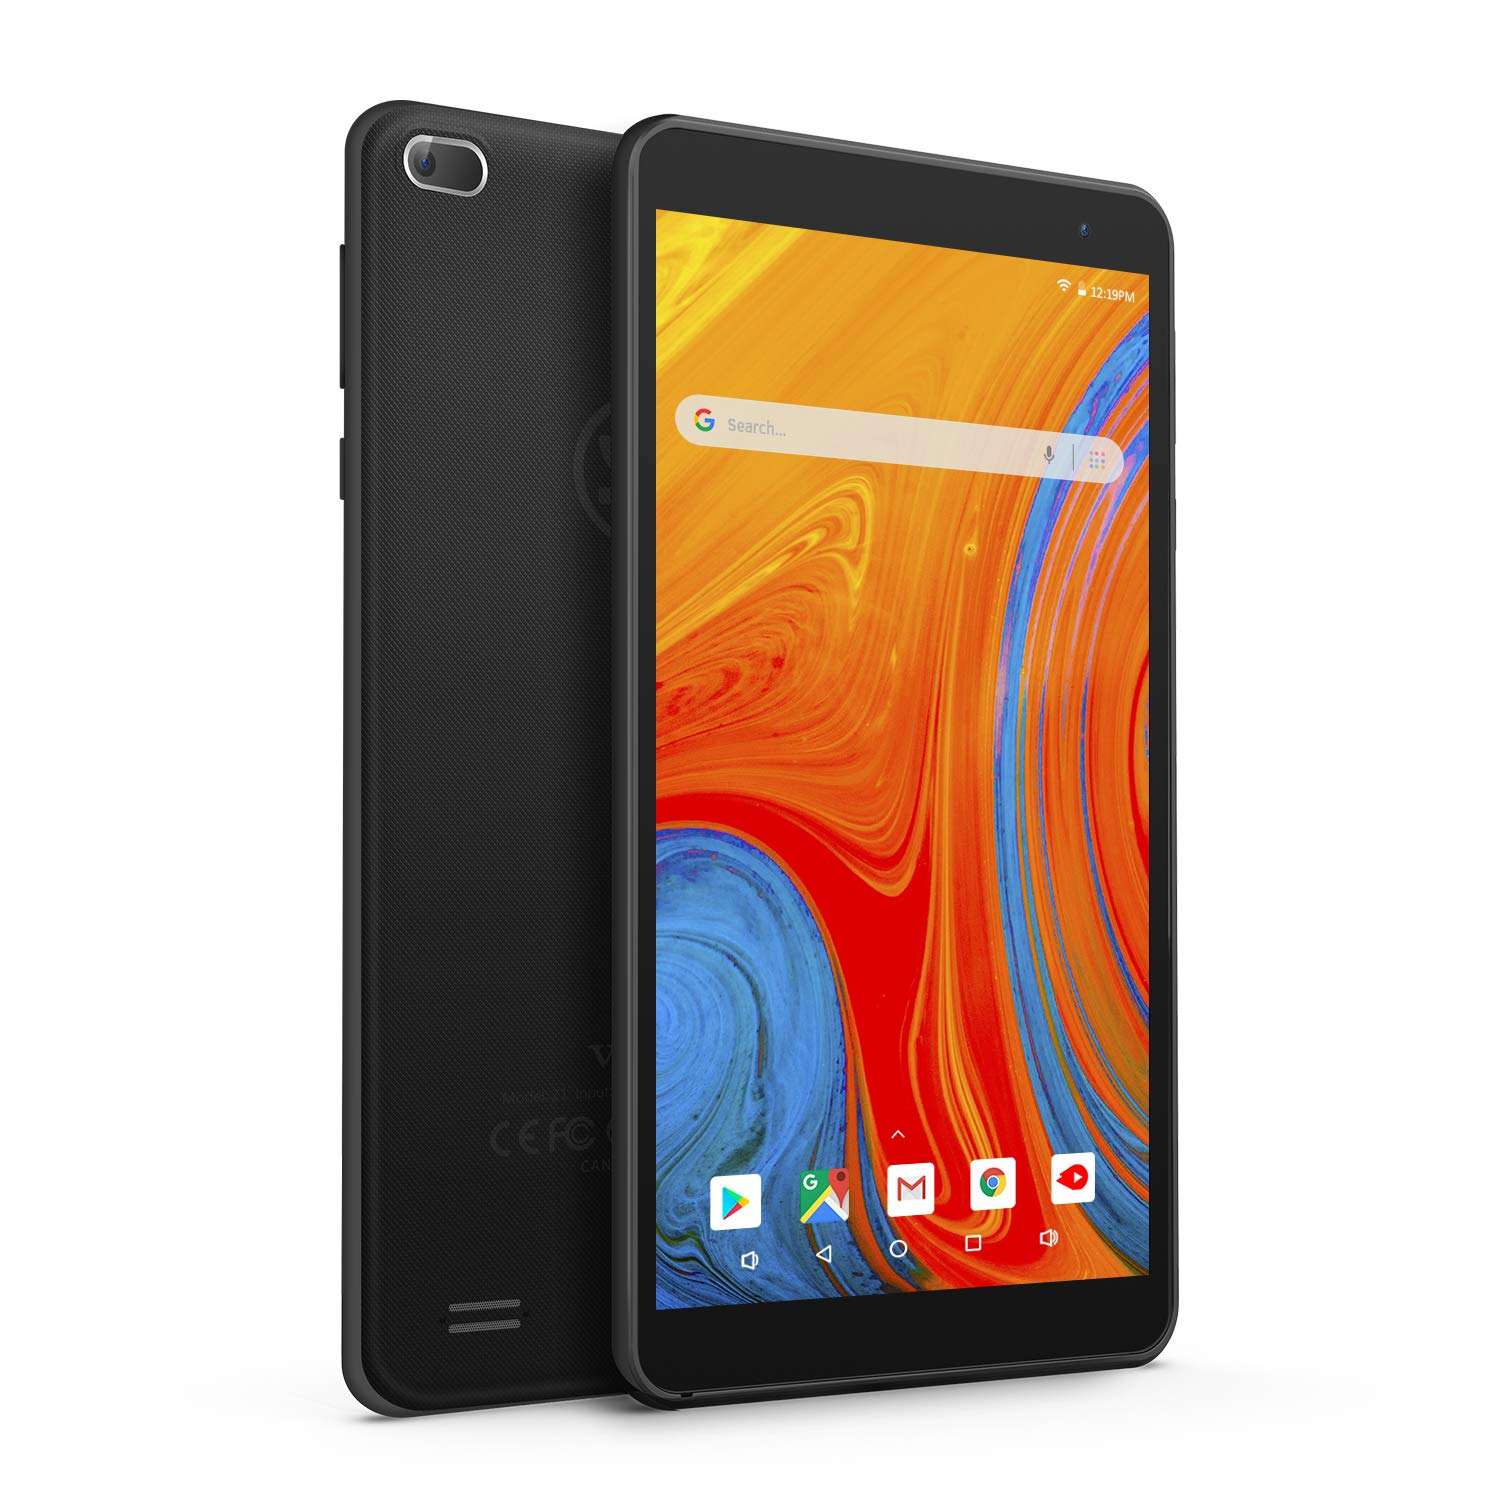 Vankyo MatrixPad Z1 7 inch Tablet, Android 8.1 Oreo Go Edition, 32GB Storage, Quad-Core Processor, IPS HD Display, Wi-Fi, Bluetooth, Black